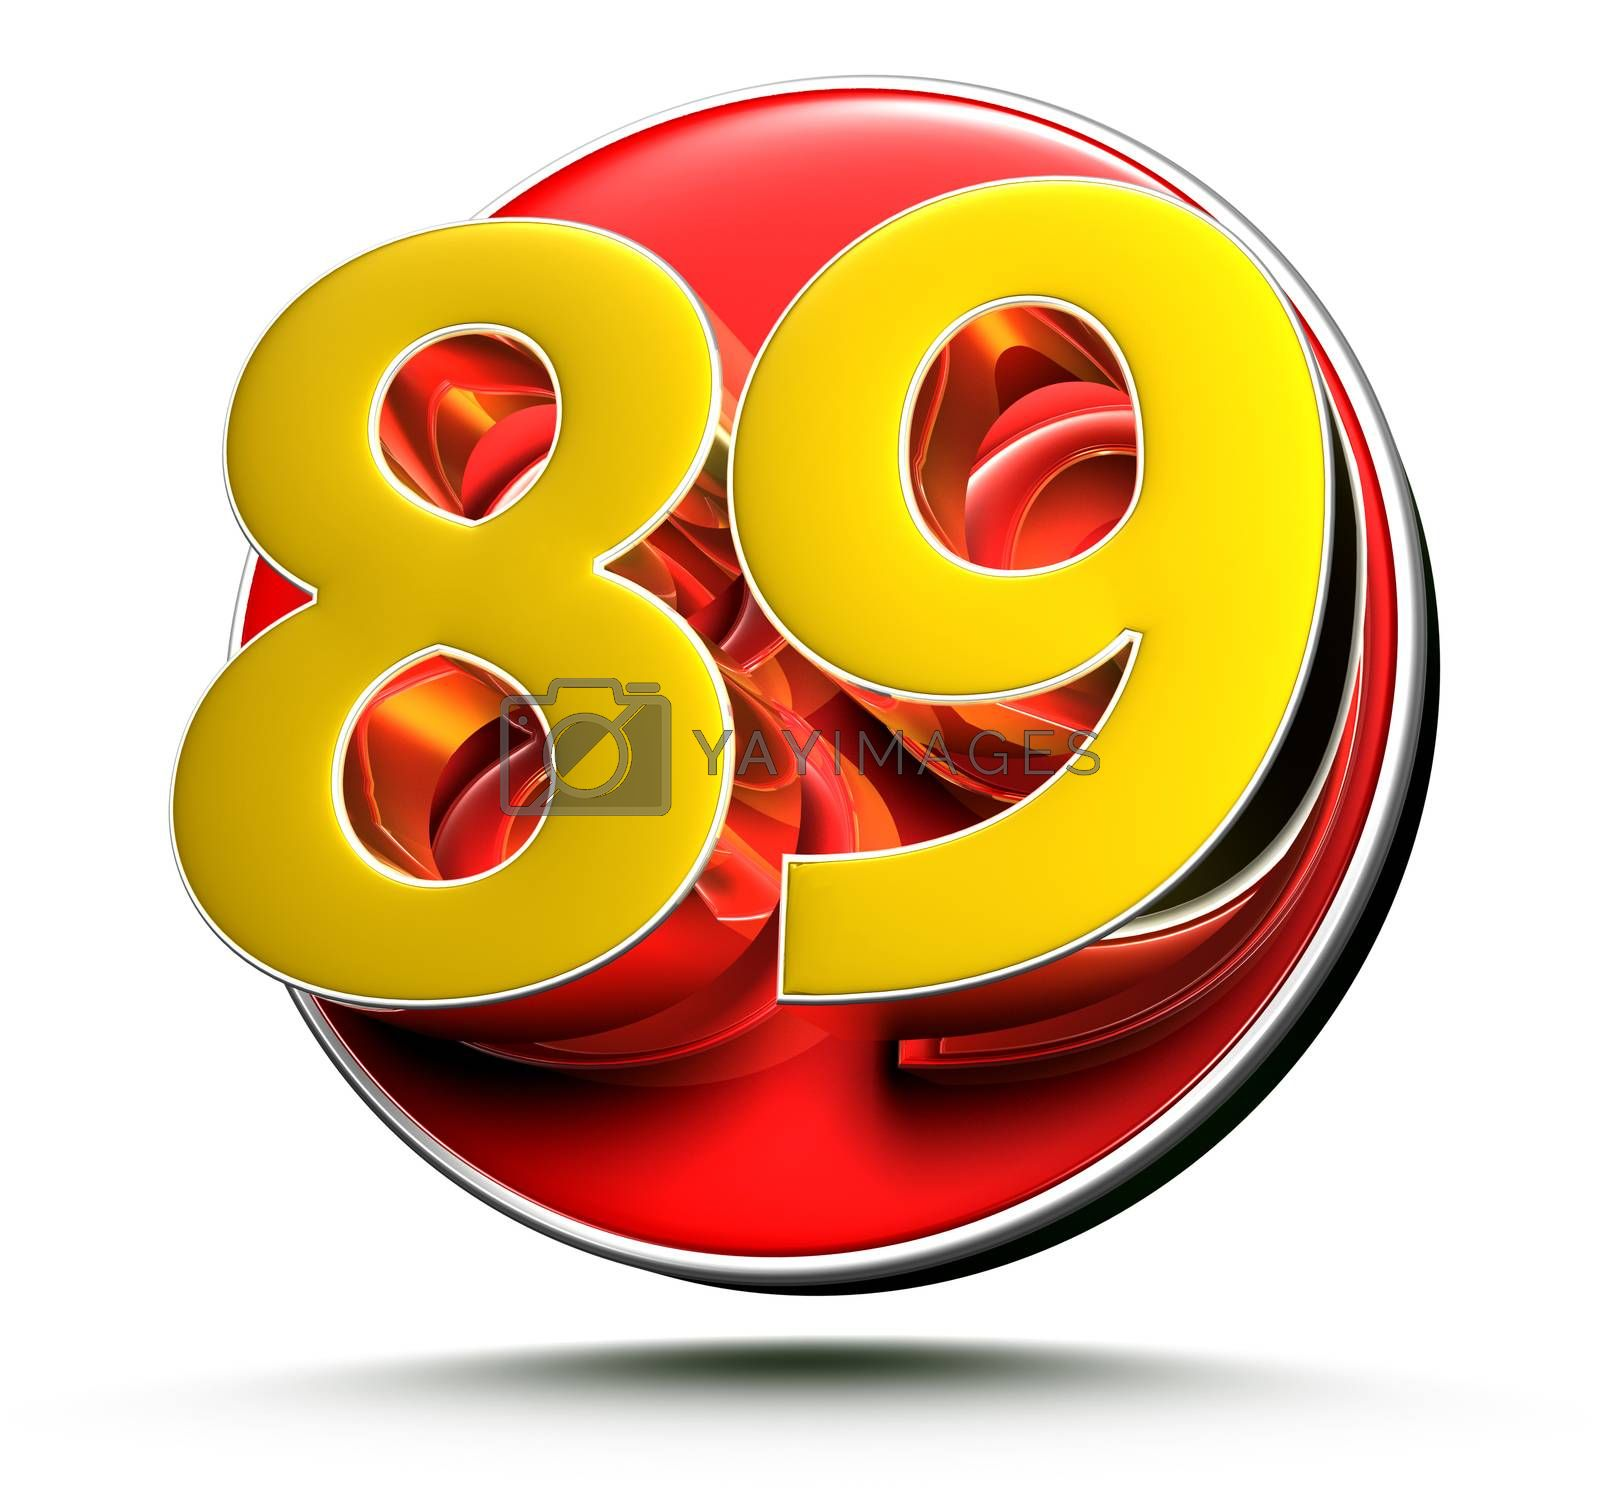 3D illustration Golden number 89 isolated on a white background.(with Clipping Path).